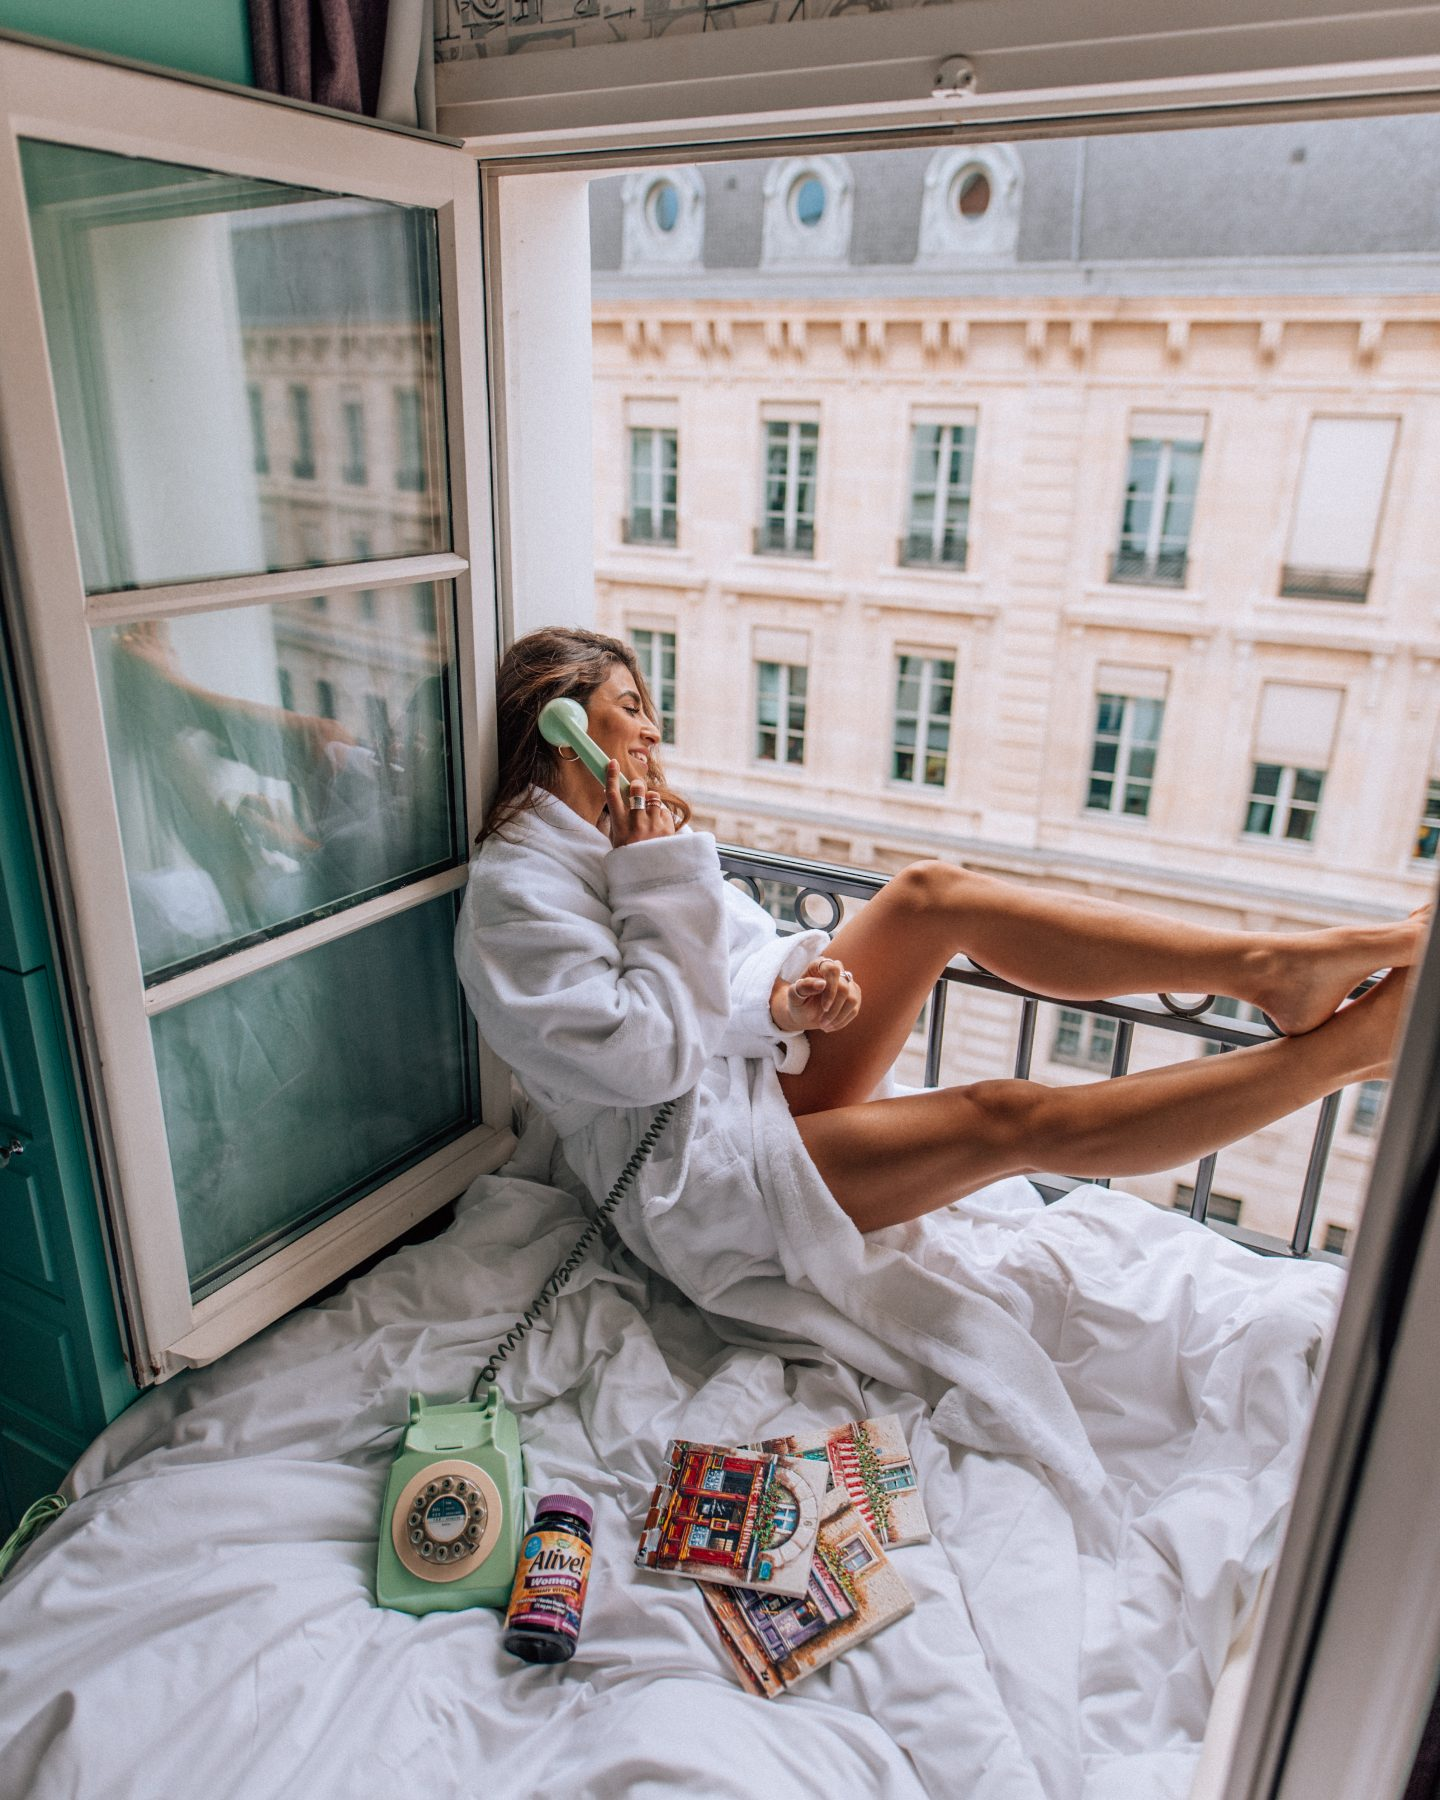 A Girlboss Morning Routine: 6 Morning Hacks to Increase Productivity